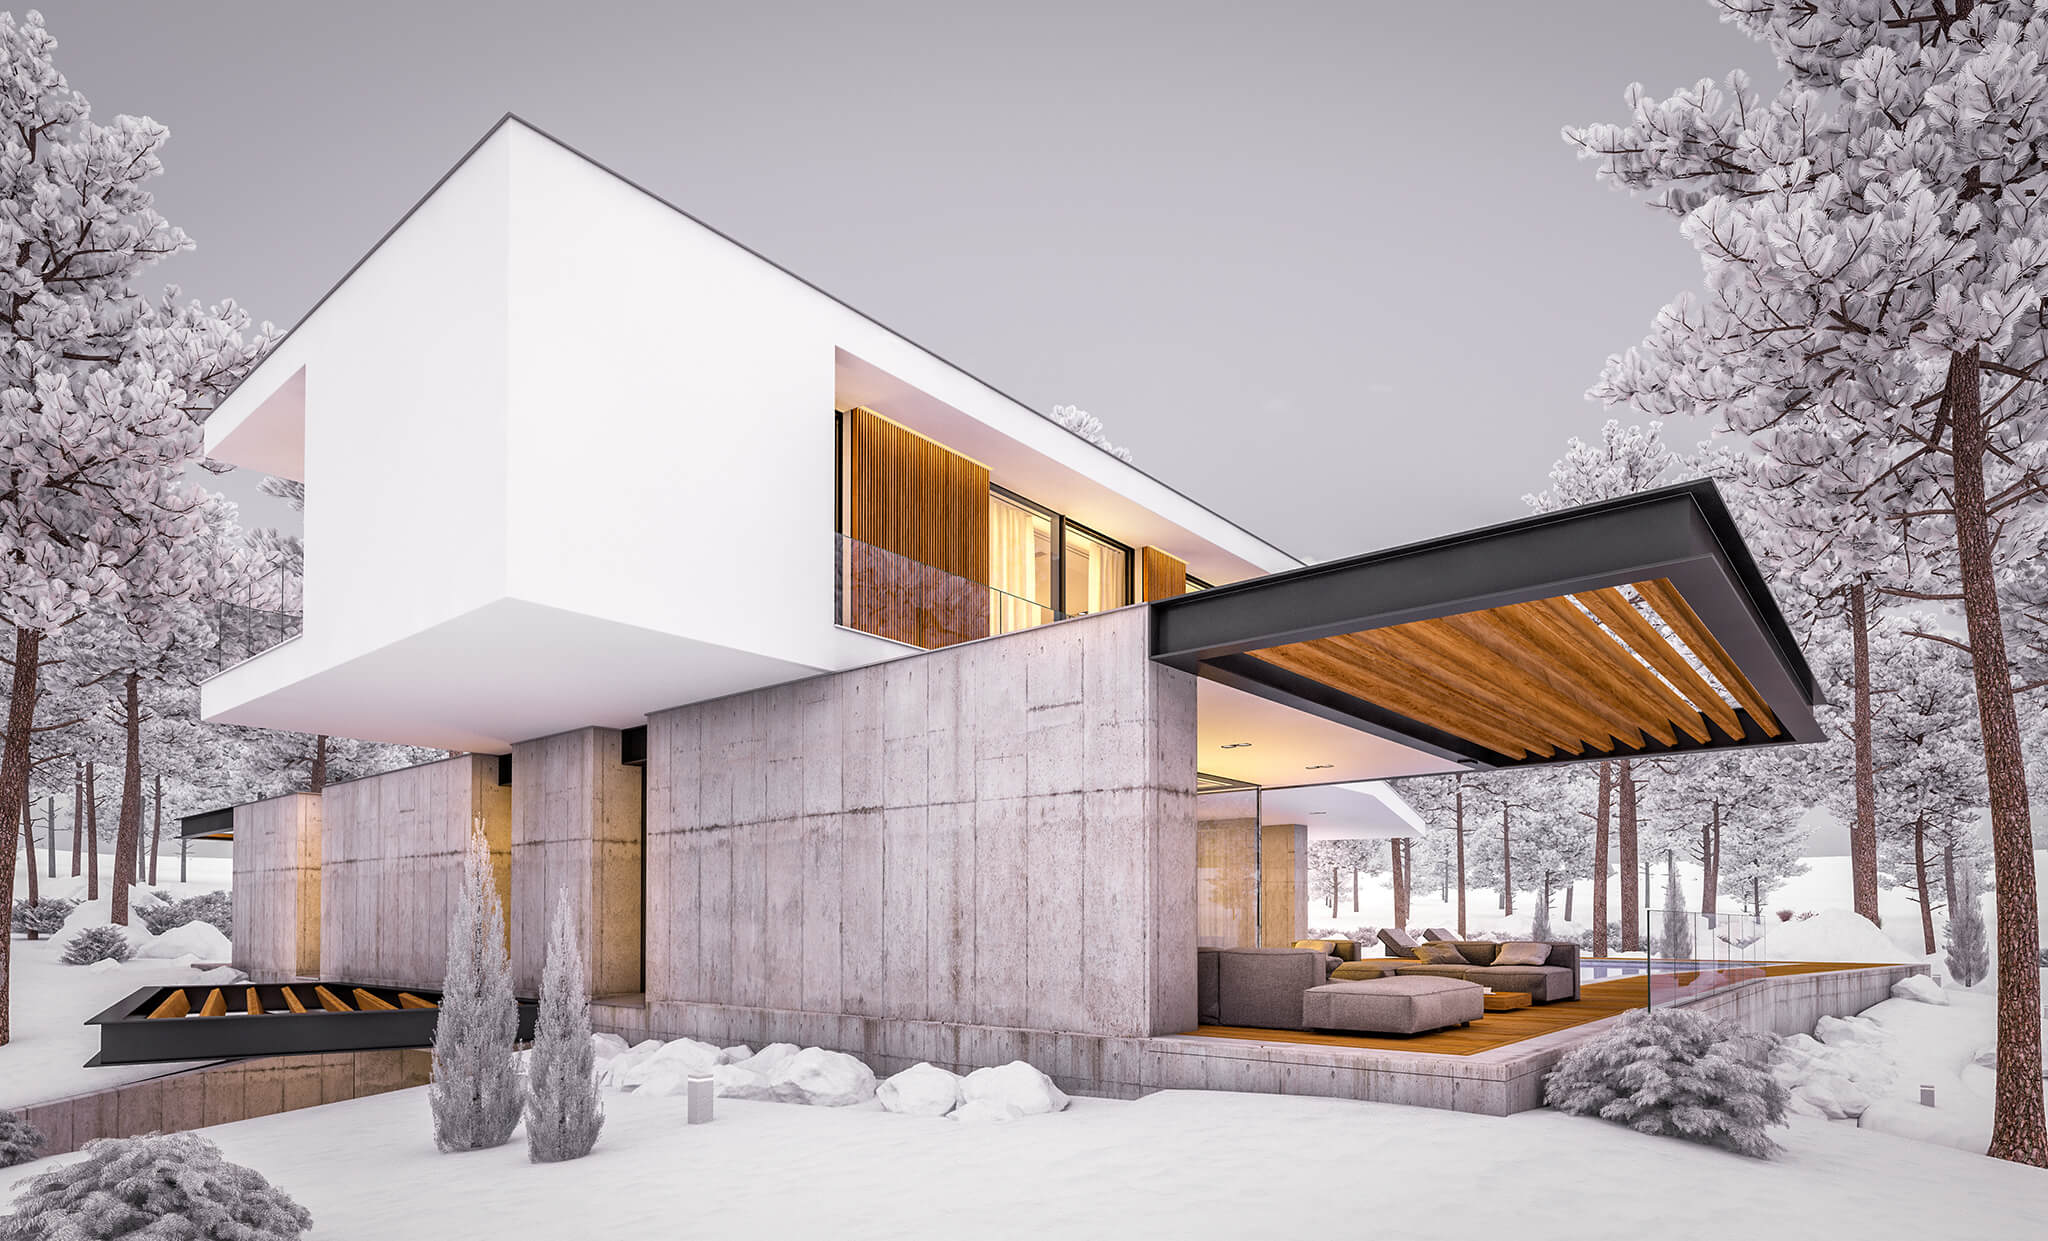 What does a modern home look like?